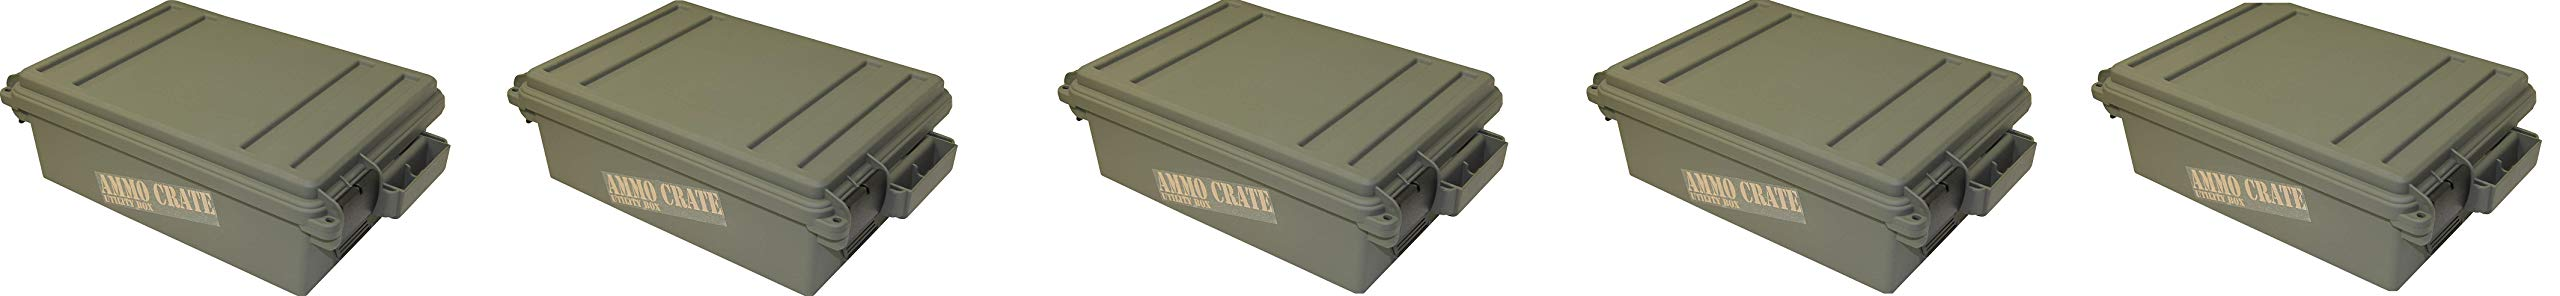 MTM ACR4-18 Ammo Crate Utility Box (Pack of 5)